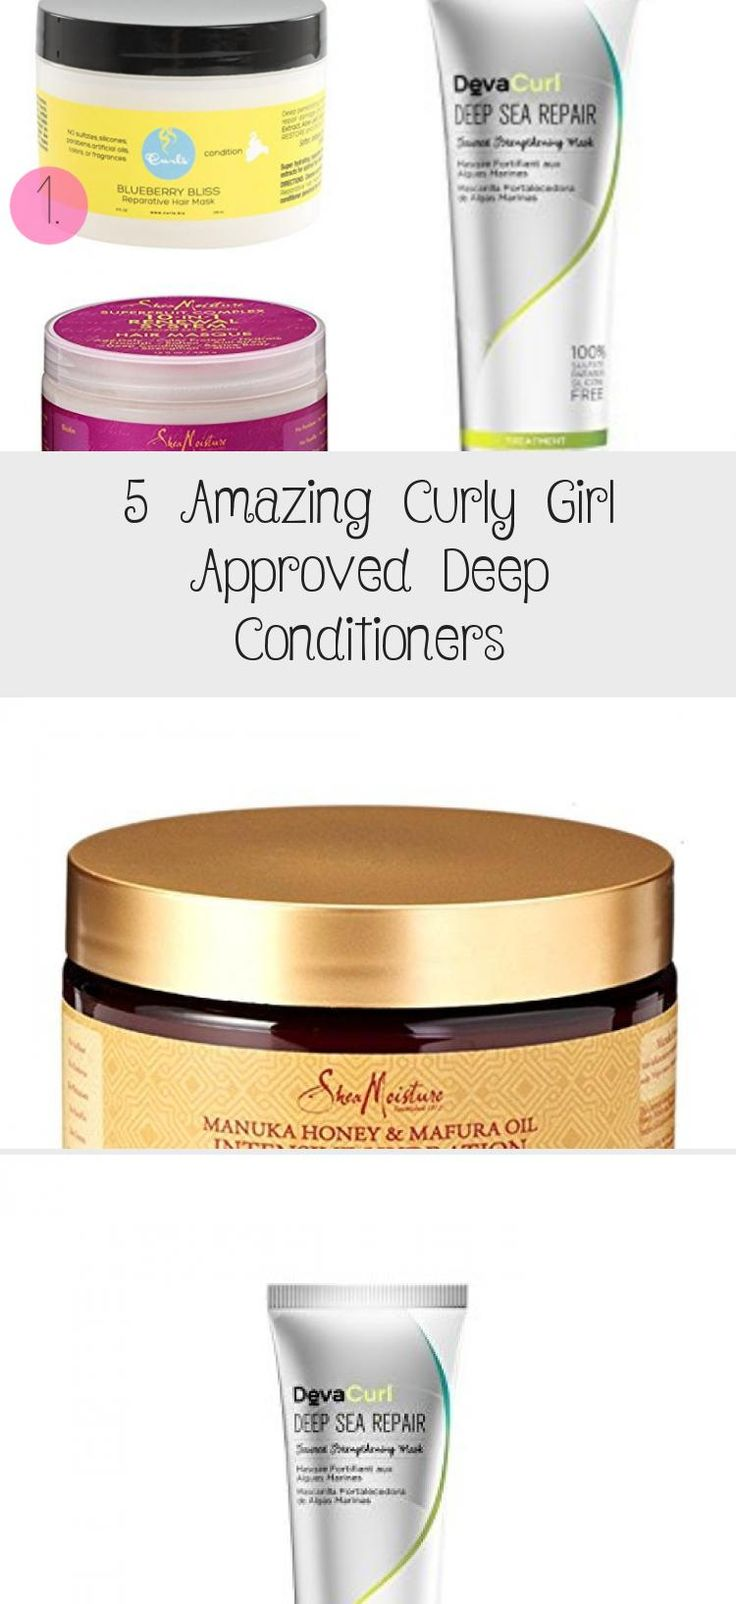 5 Amazing Curly Girl Approved Deep Conditioners » J, Tay